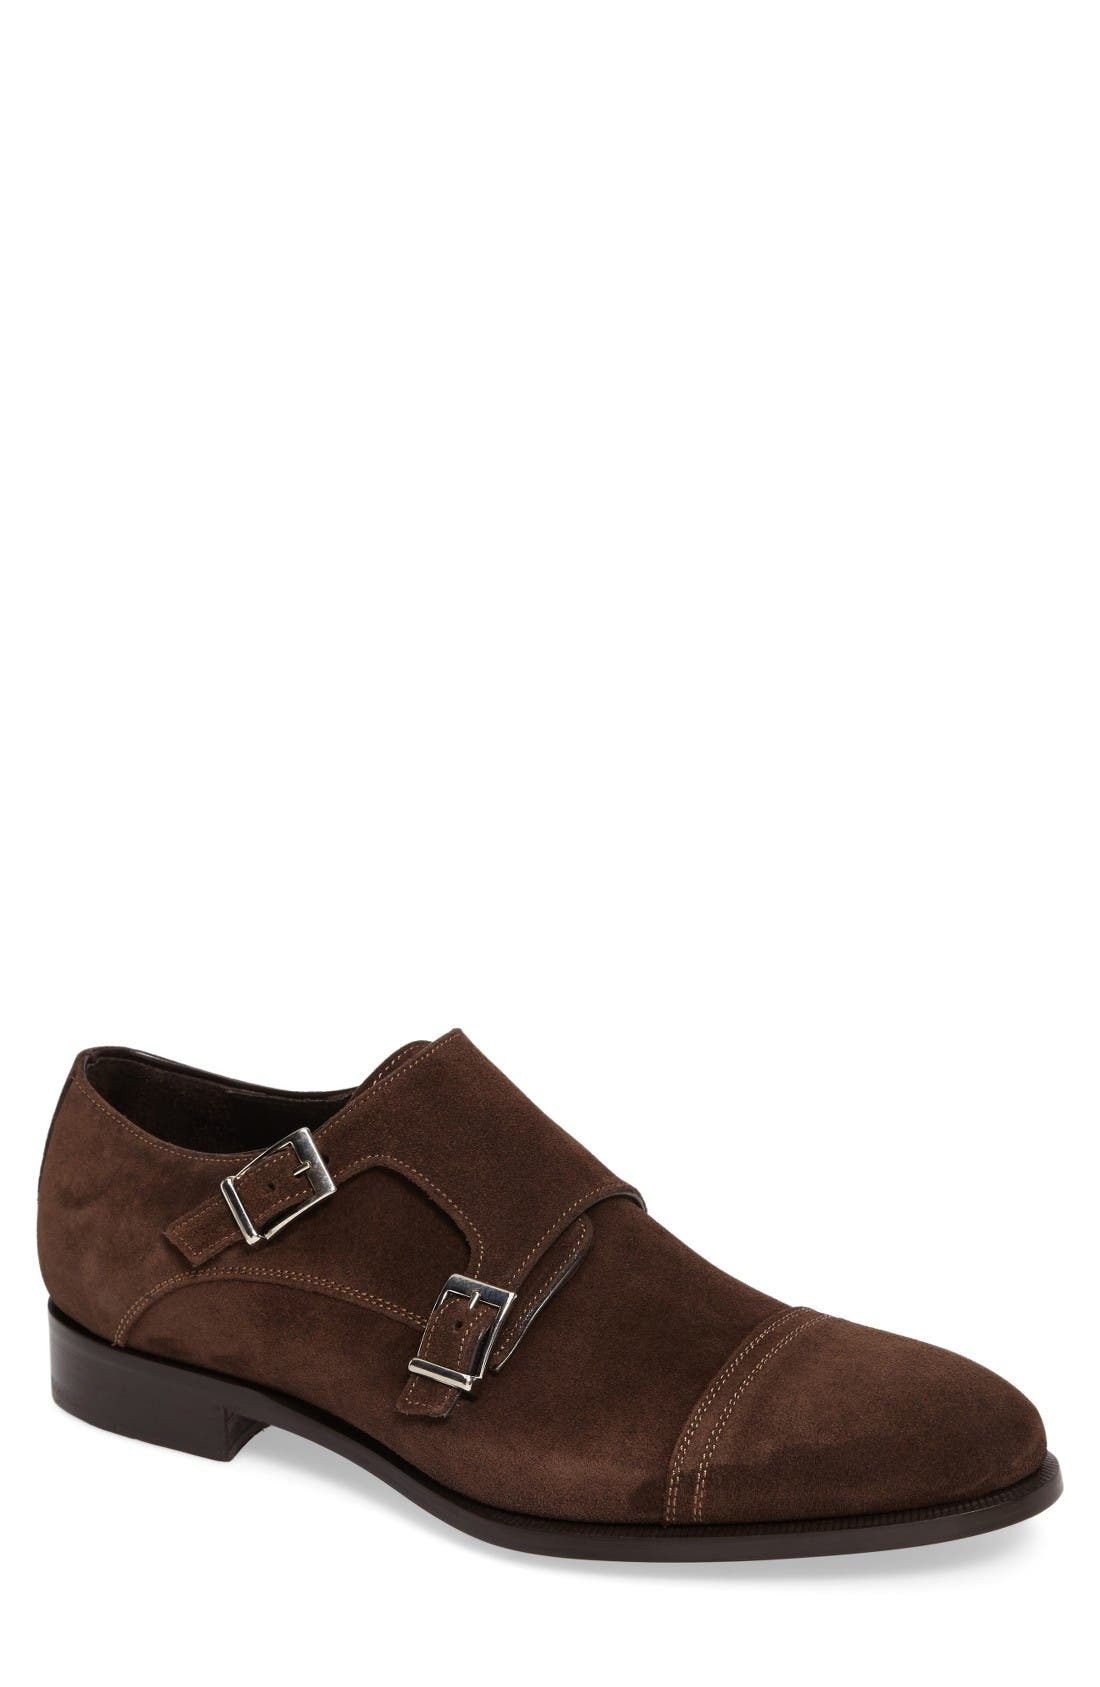 Alternate Image 1 Selected - Crosby Square Conley Double Monk Strap Shoe (Men)